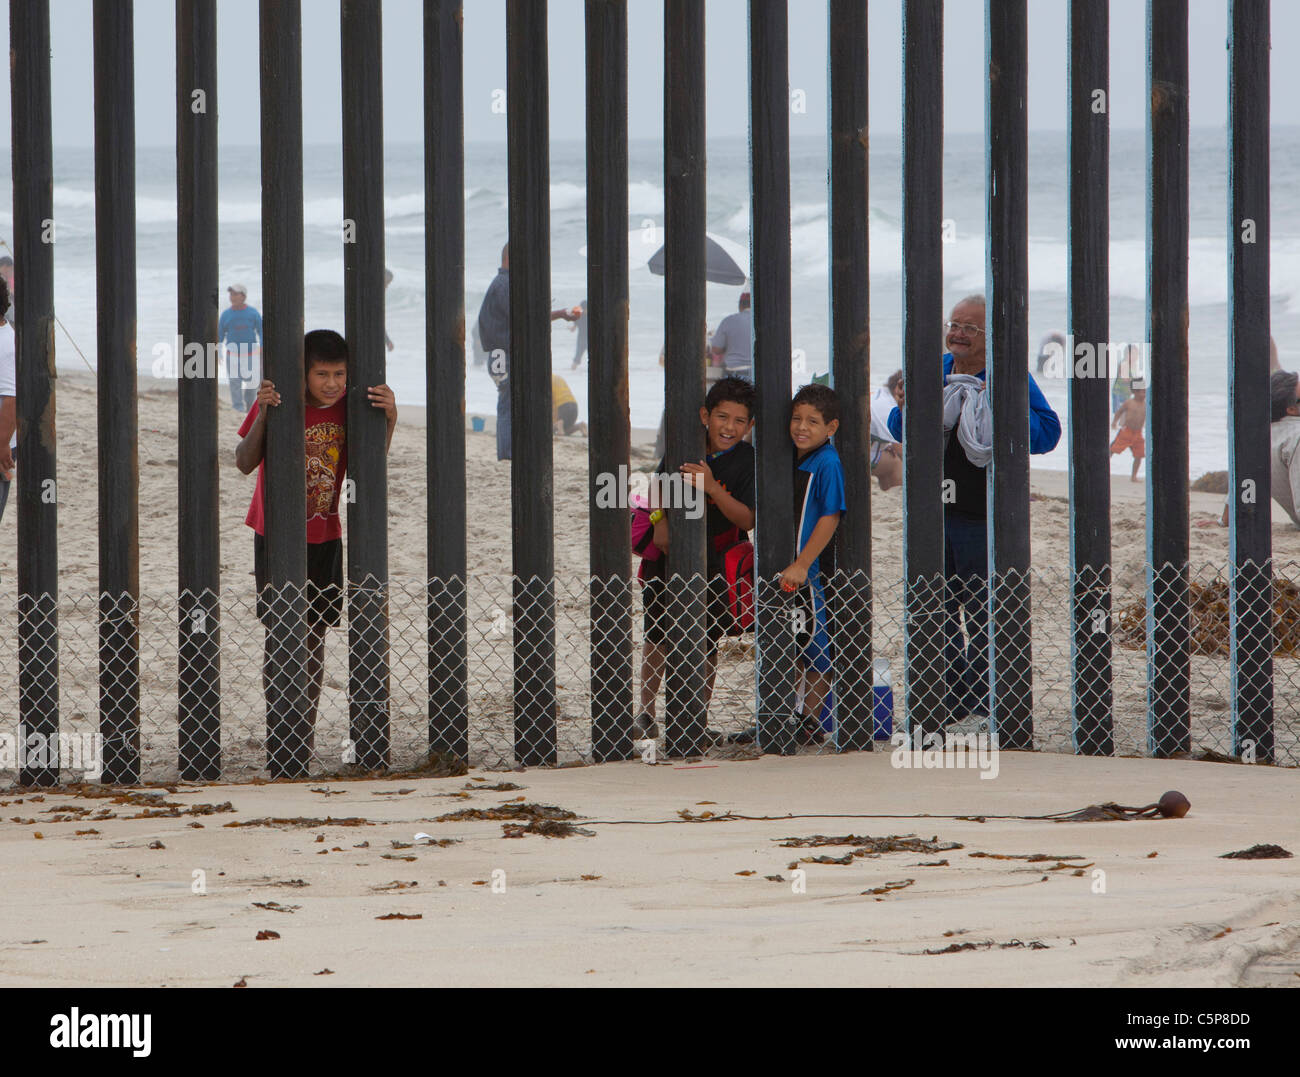 U.S.-Mexico Border Fence at Pacific Ocean - Stock Image